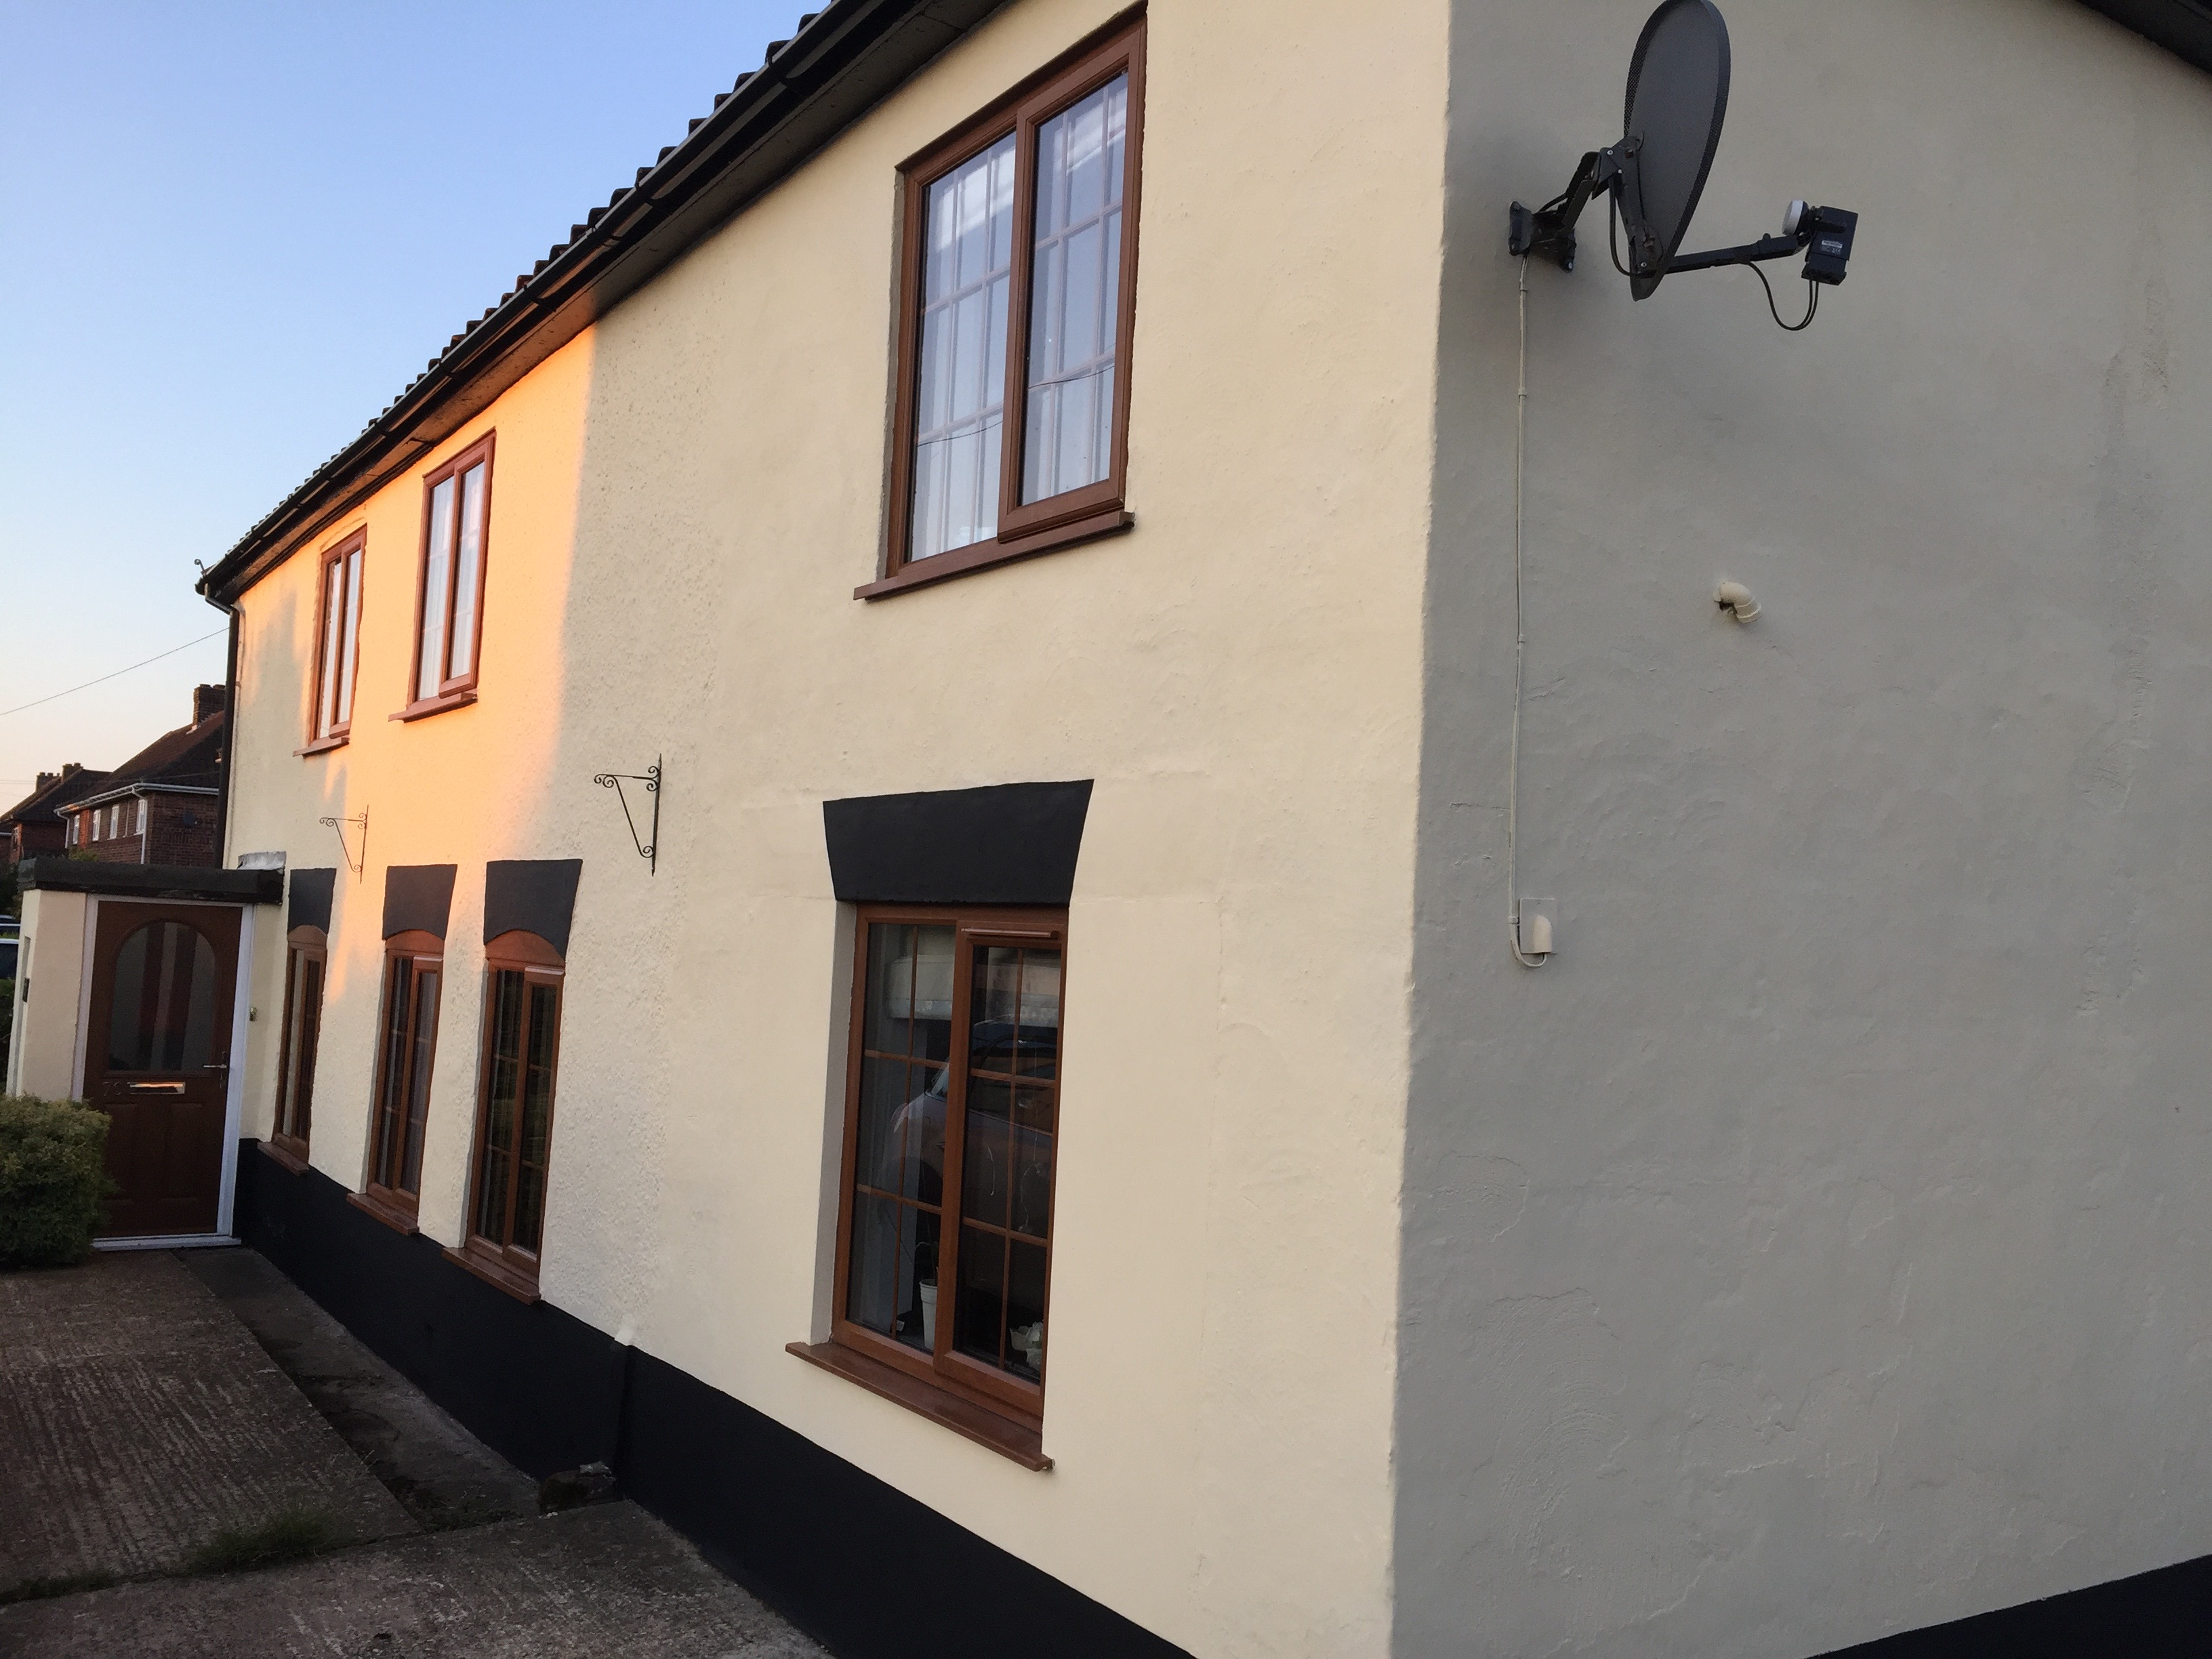 House re-painting